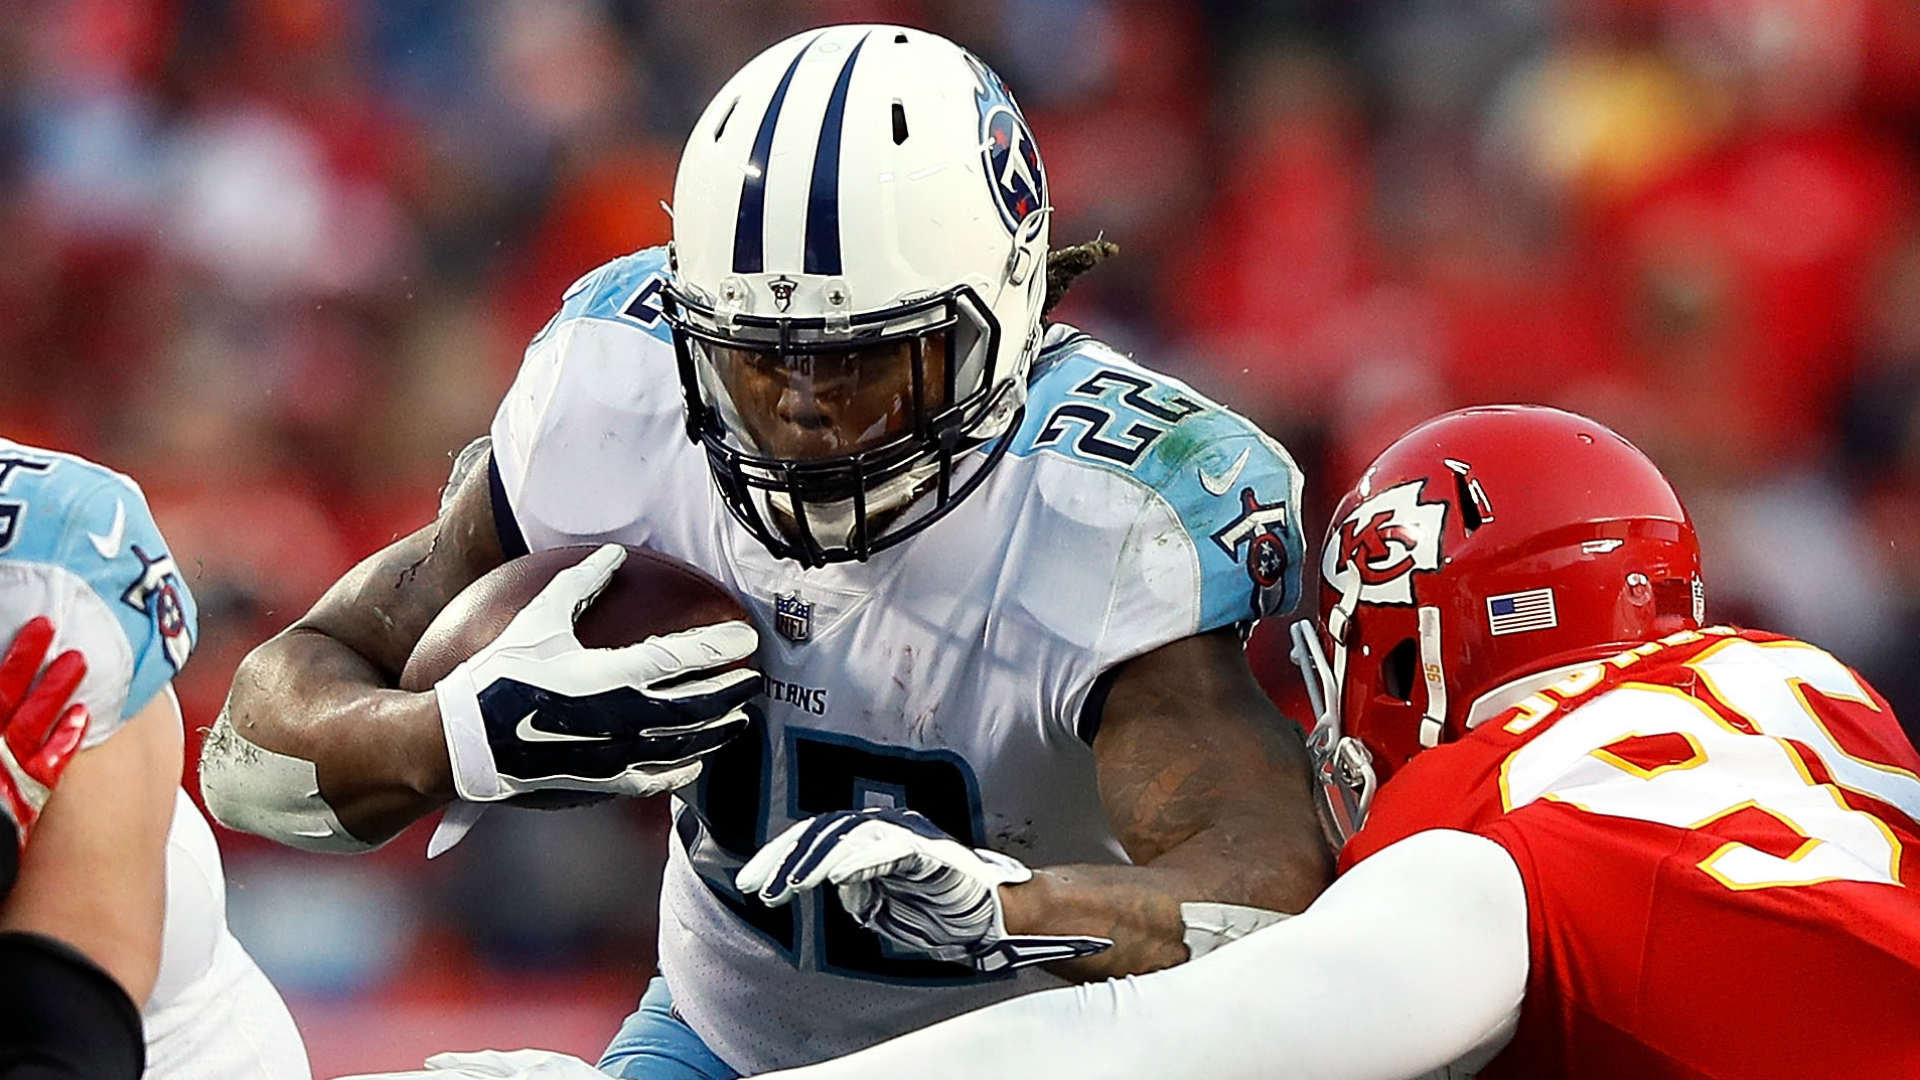 Titans RB Murray ruled out vs. Patriots